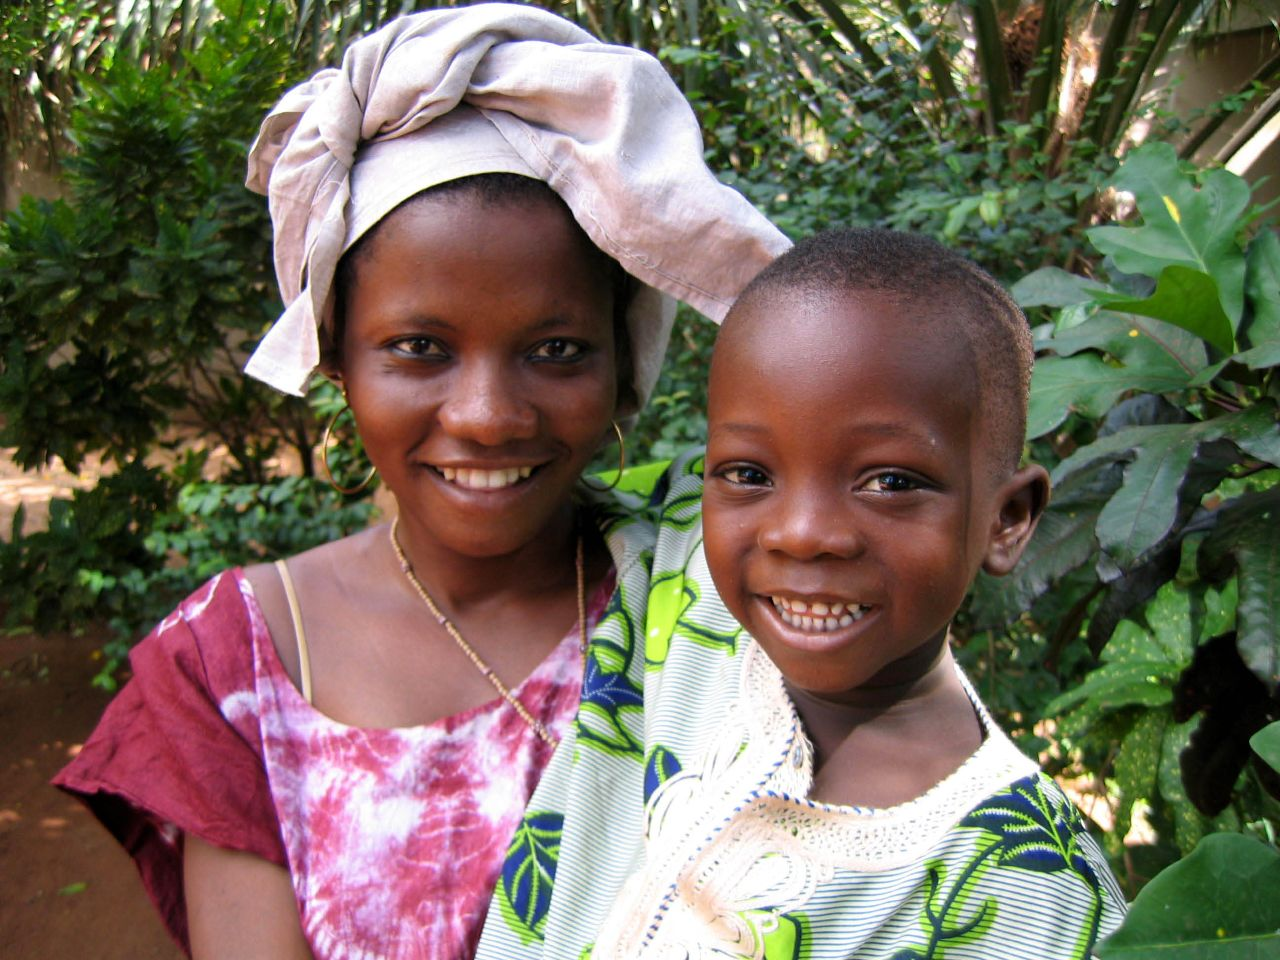 Mother and child in Lome Togo Africa.